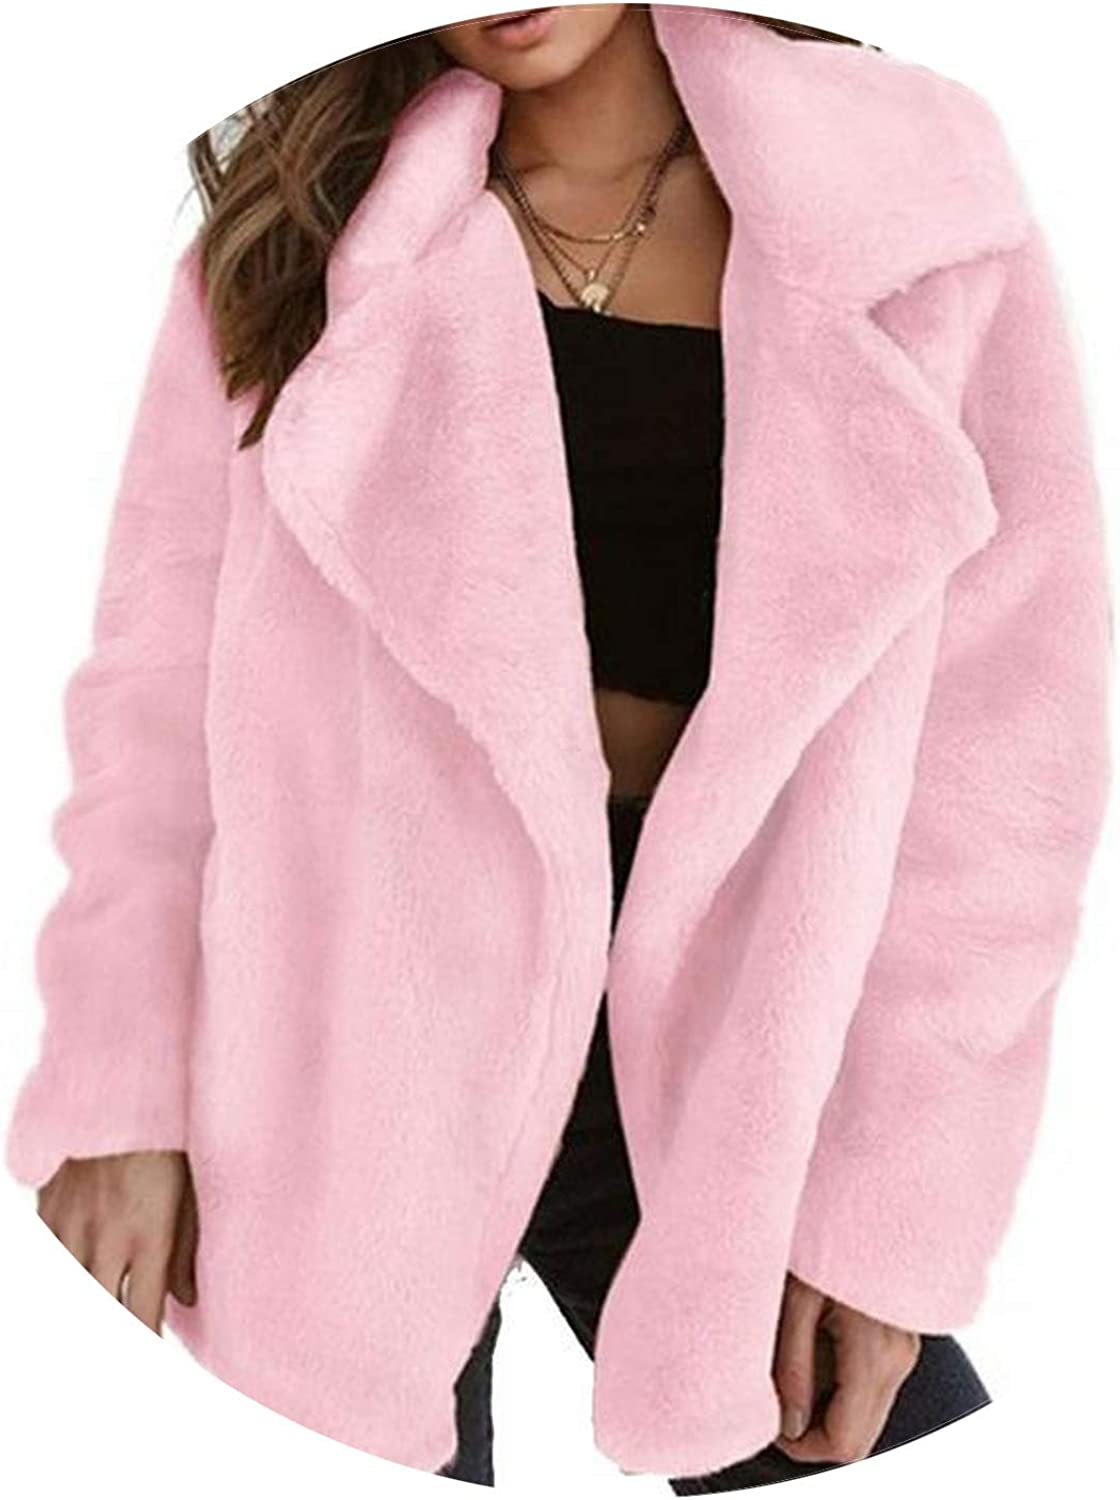 Henraly Faux Fur Coat Coats and Jackets Women Winter Warm Soft Fur Jacket Plush Overcoat